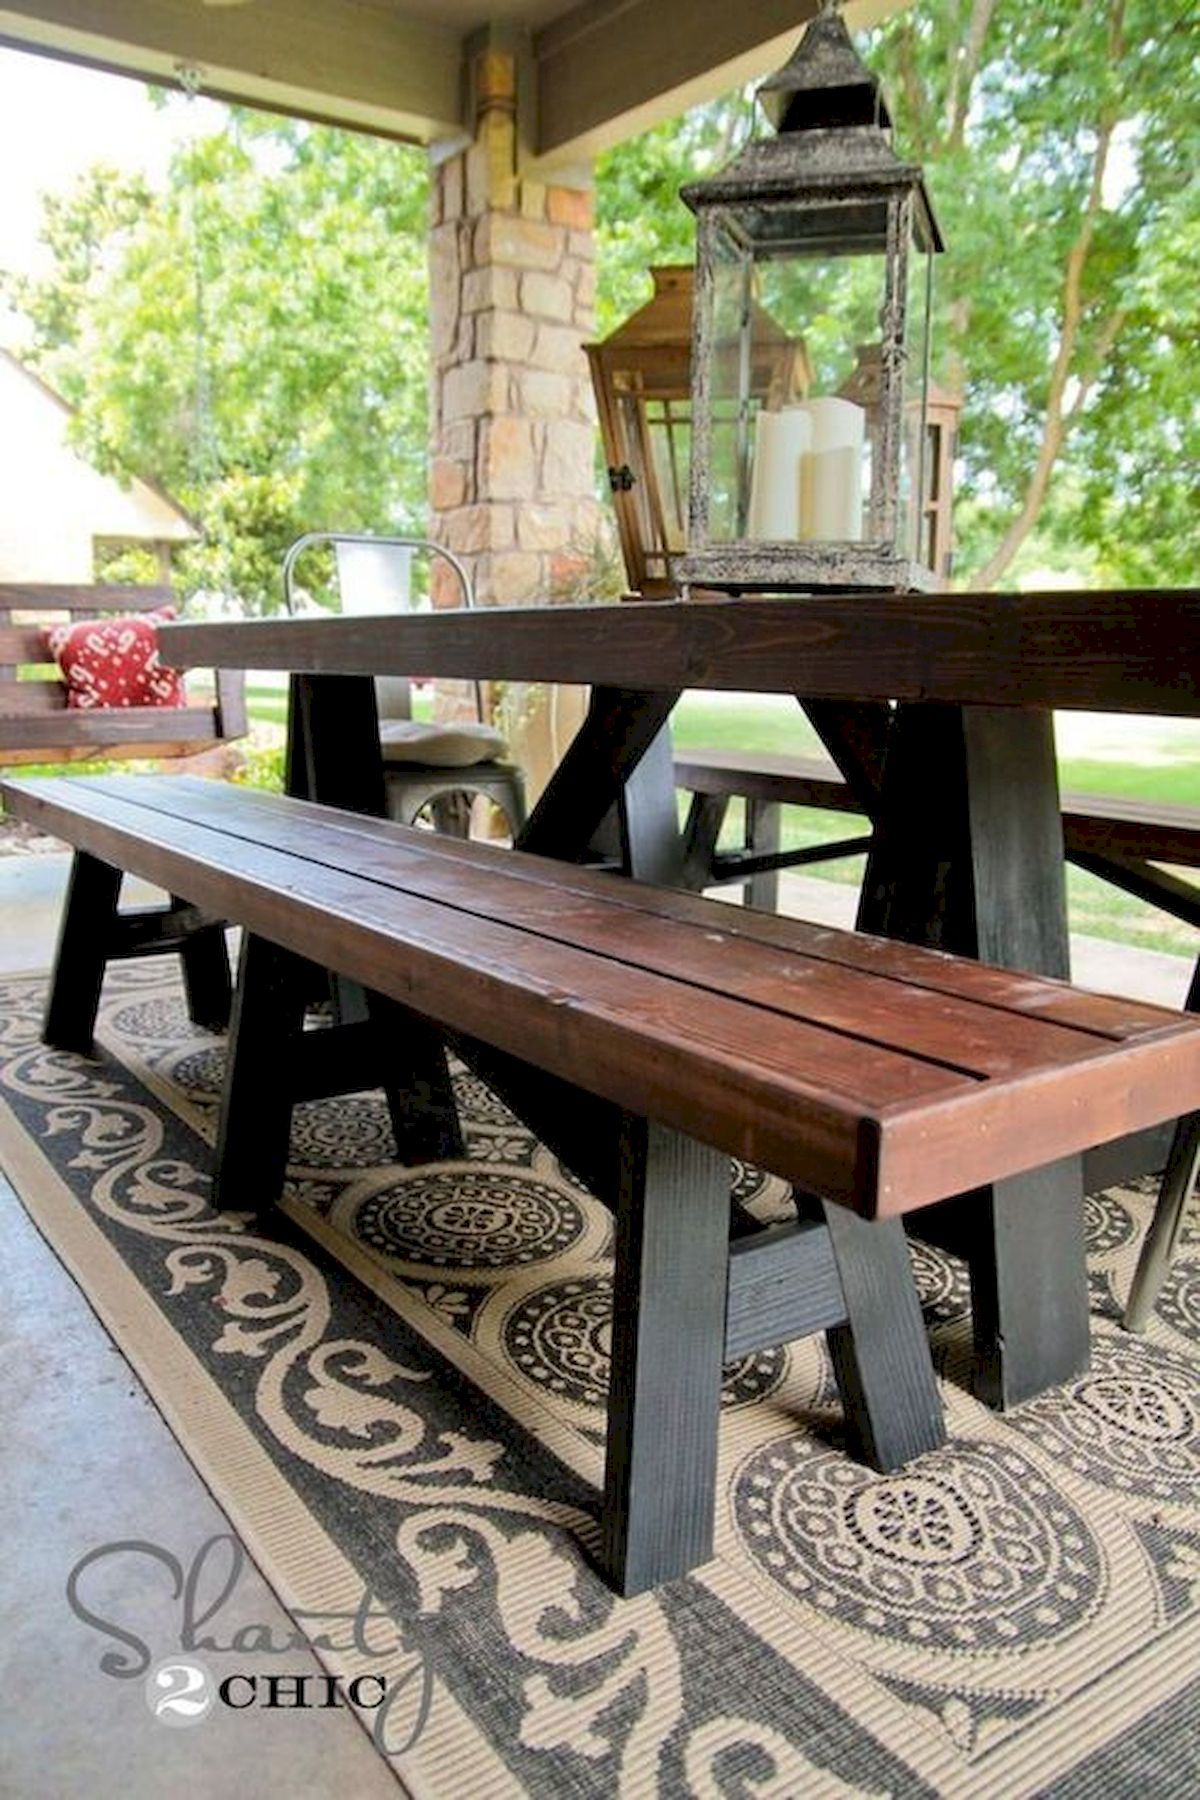 40 Awesome DIY Outdoor Bench Ideas For Backyard And Front Yard Garden (25)